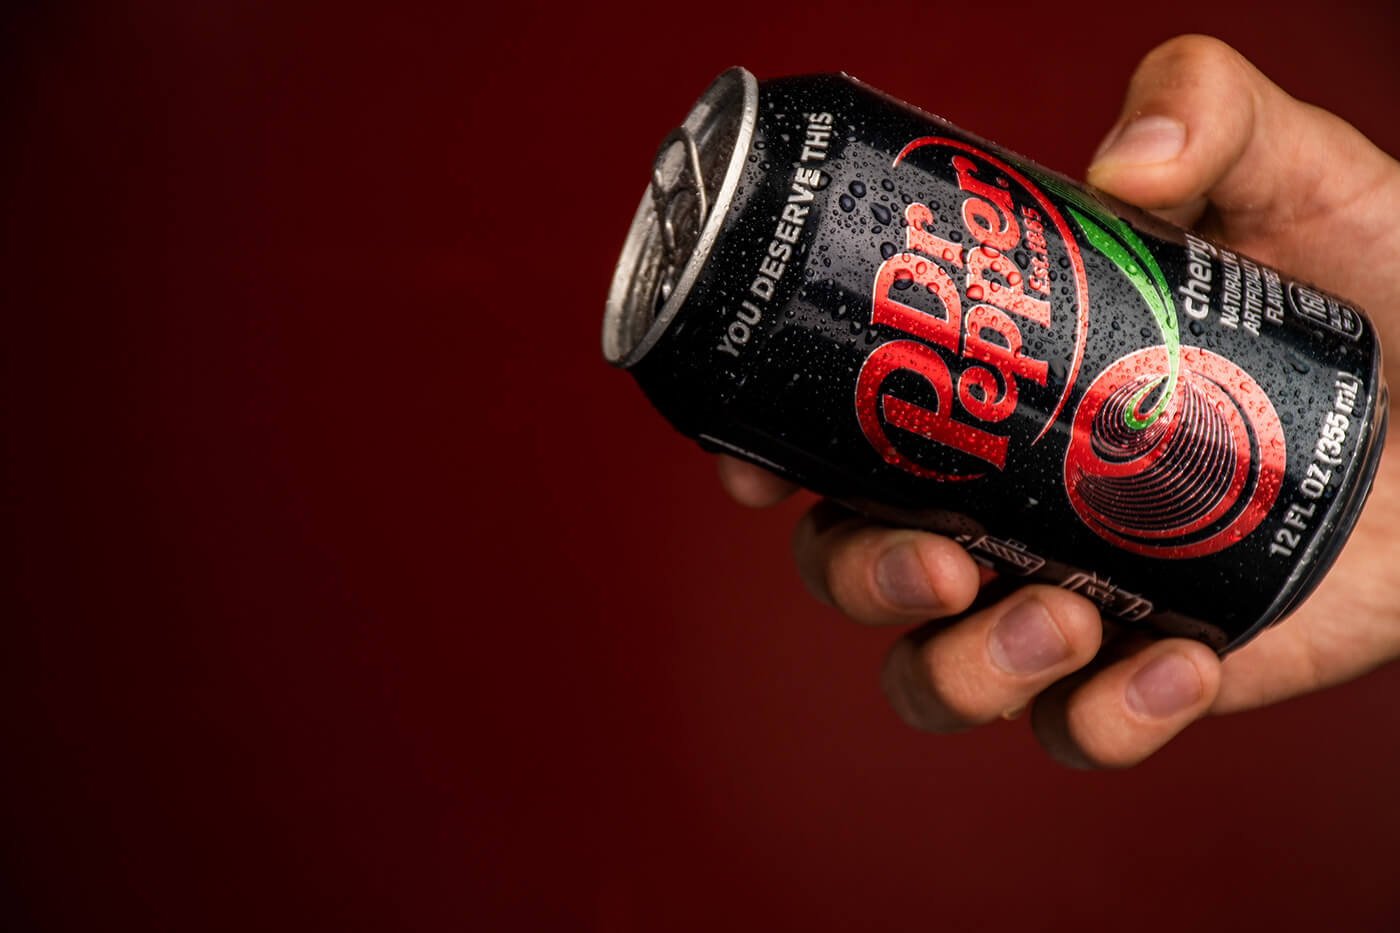 Dr Pepper. Studio Product Photography